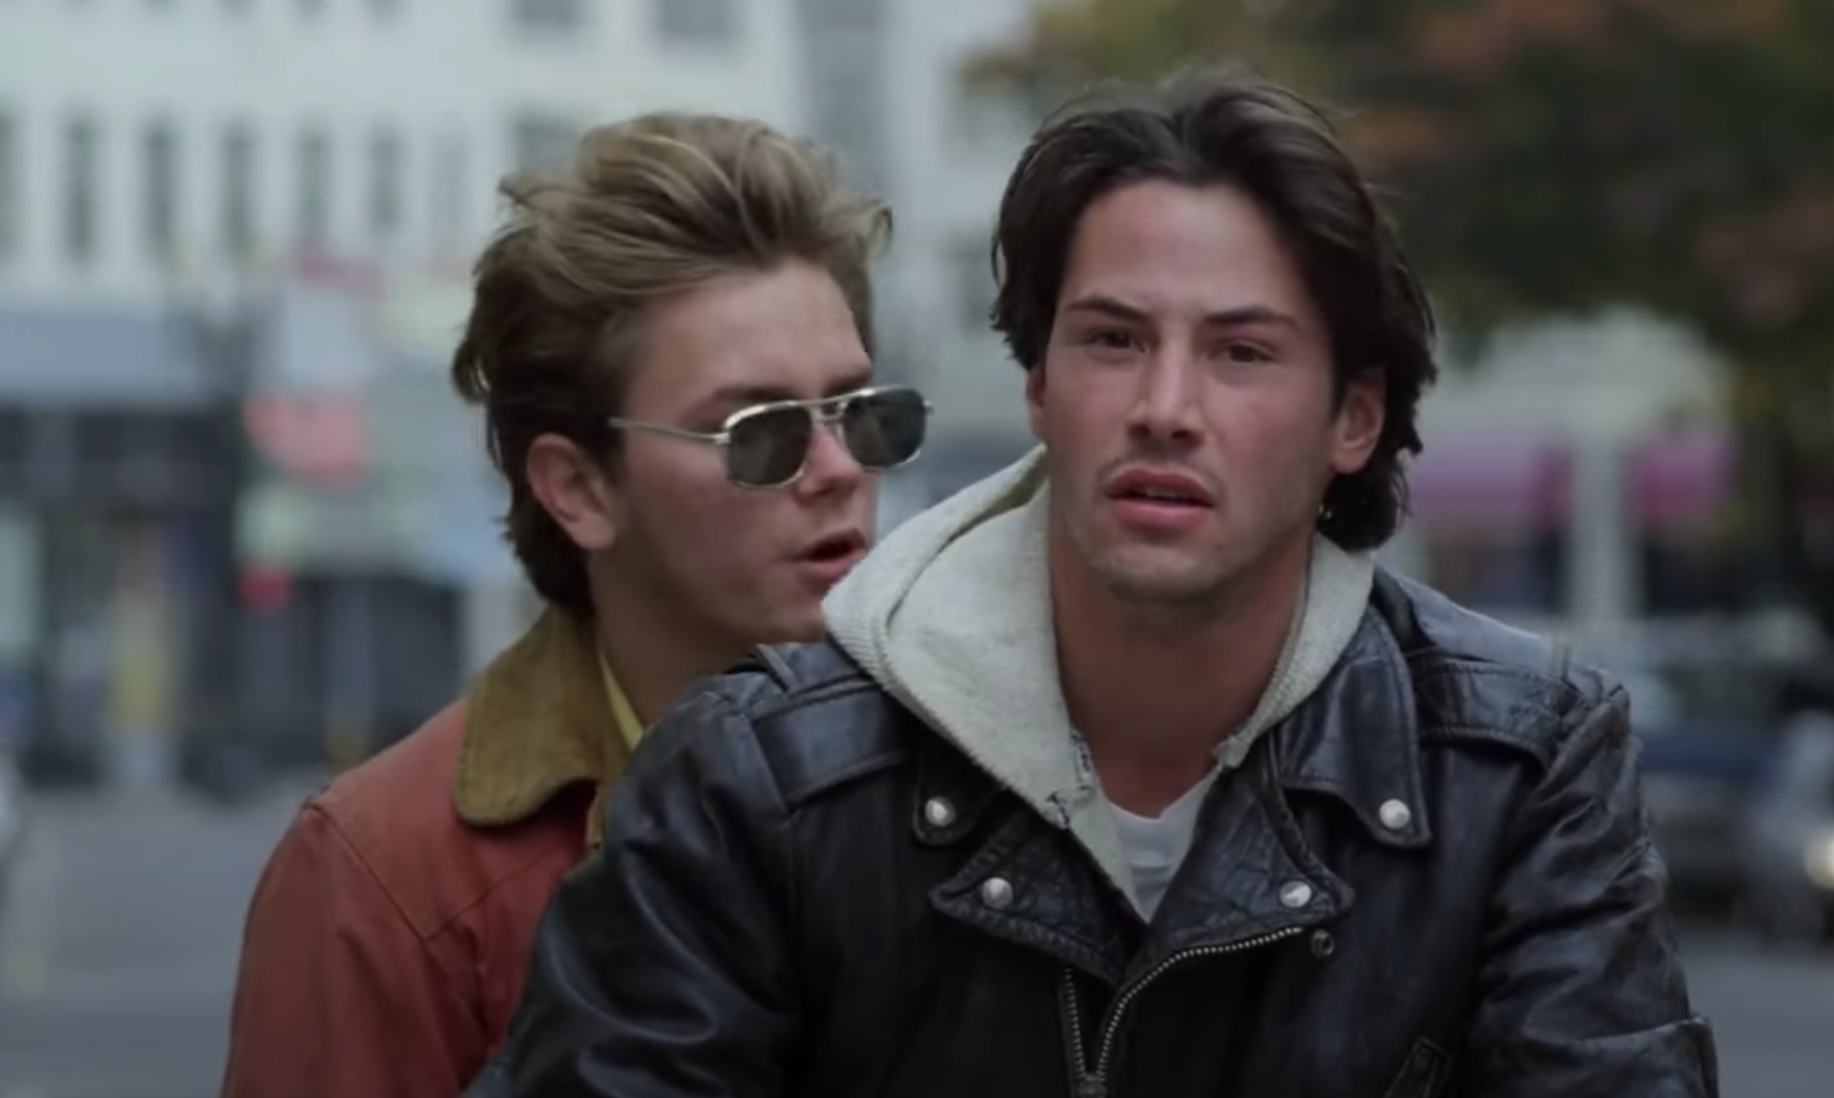 Cool, bohemian Reeve rides a motorcycle with an equally cool River Phoenix on the back in my own private idaho